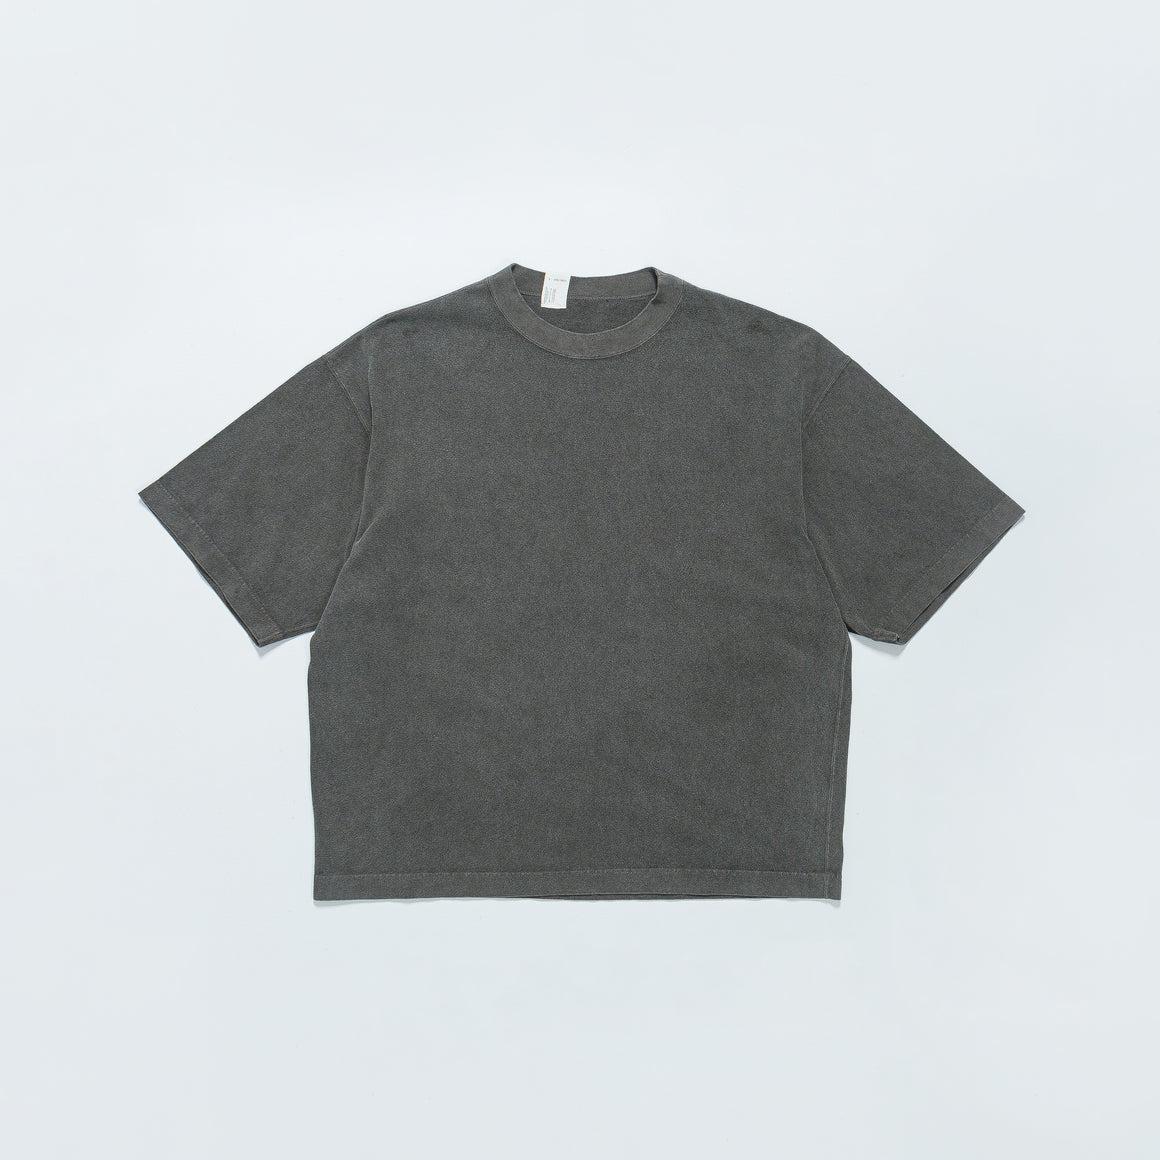 N. Hoolywood - T-Shirt - Washed Charcoal - Up There